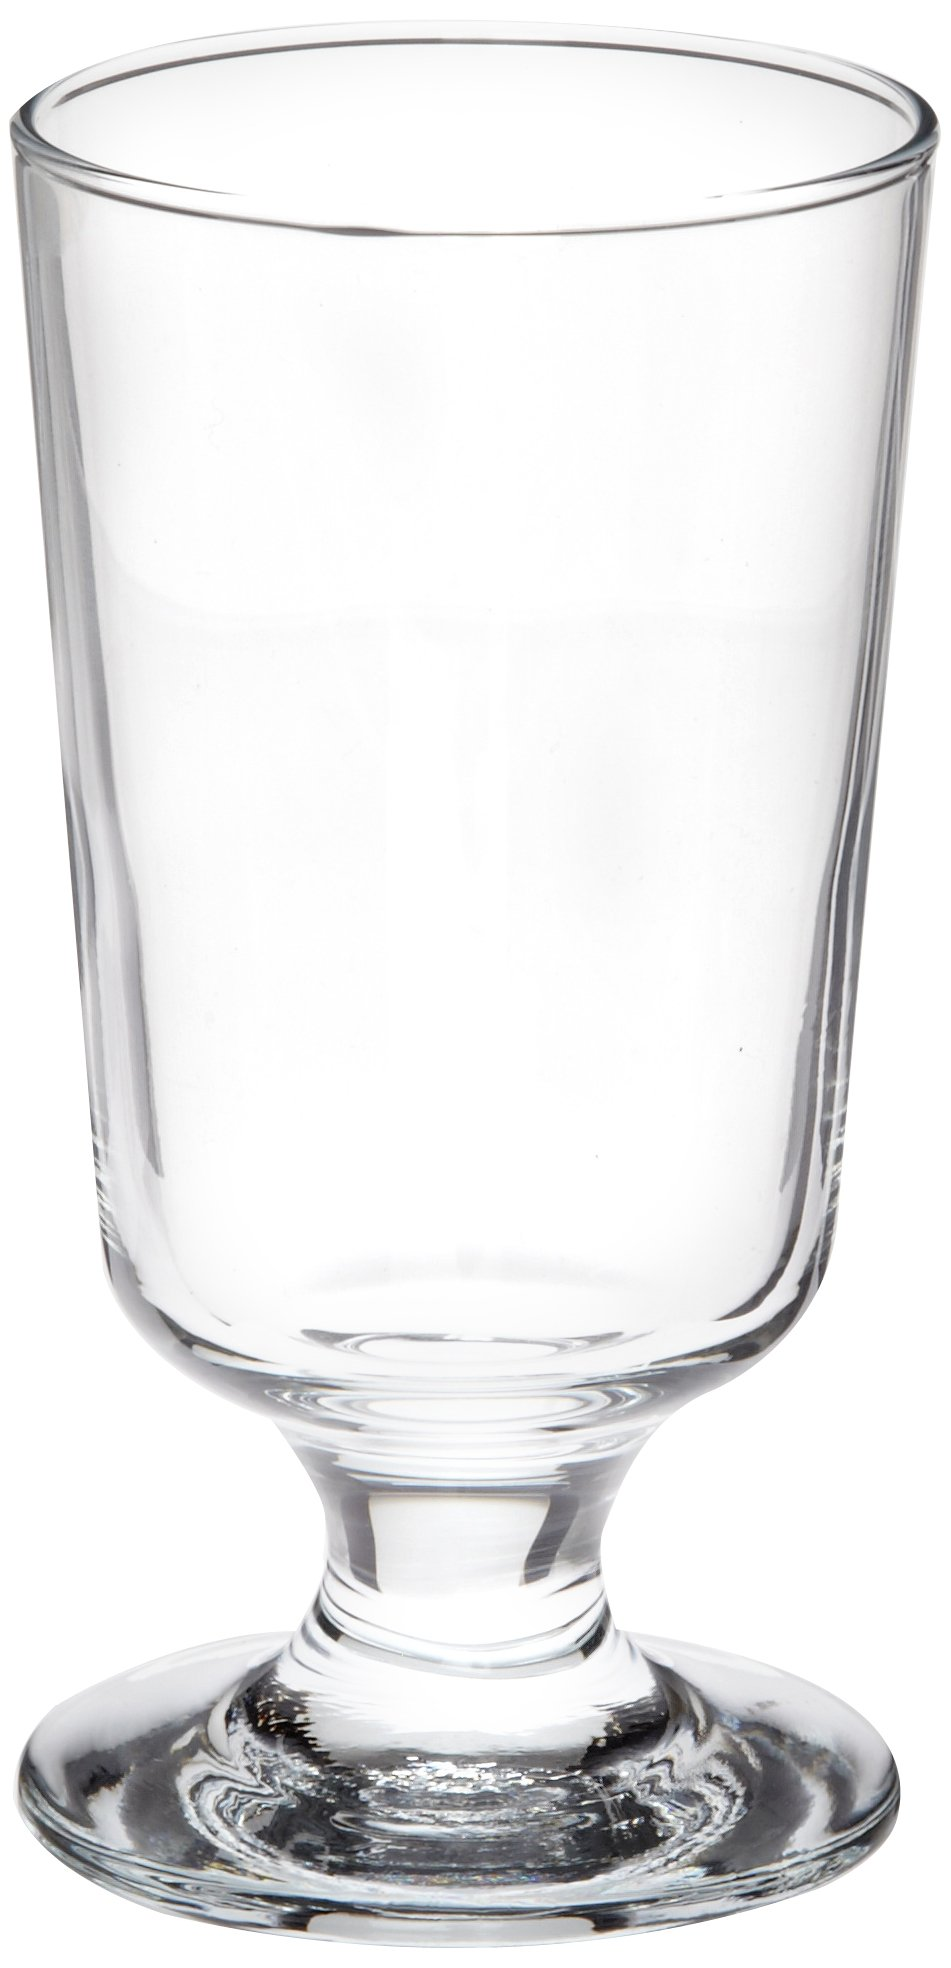 Excellency 2908M 2-3/4'' Diameter x 5-3/8'' Height, 8 oz Footed Highball Glass (Case of 36)